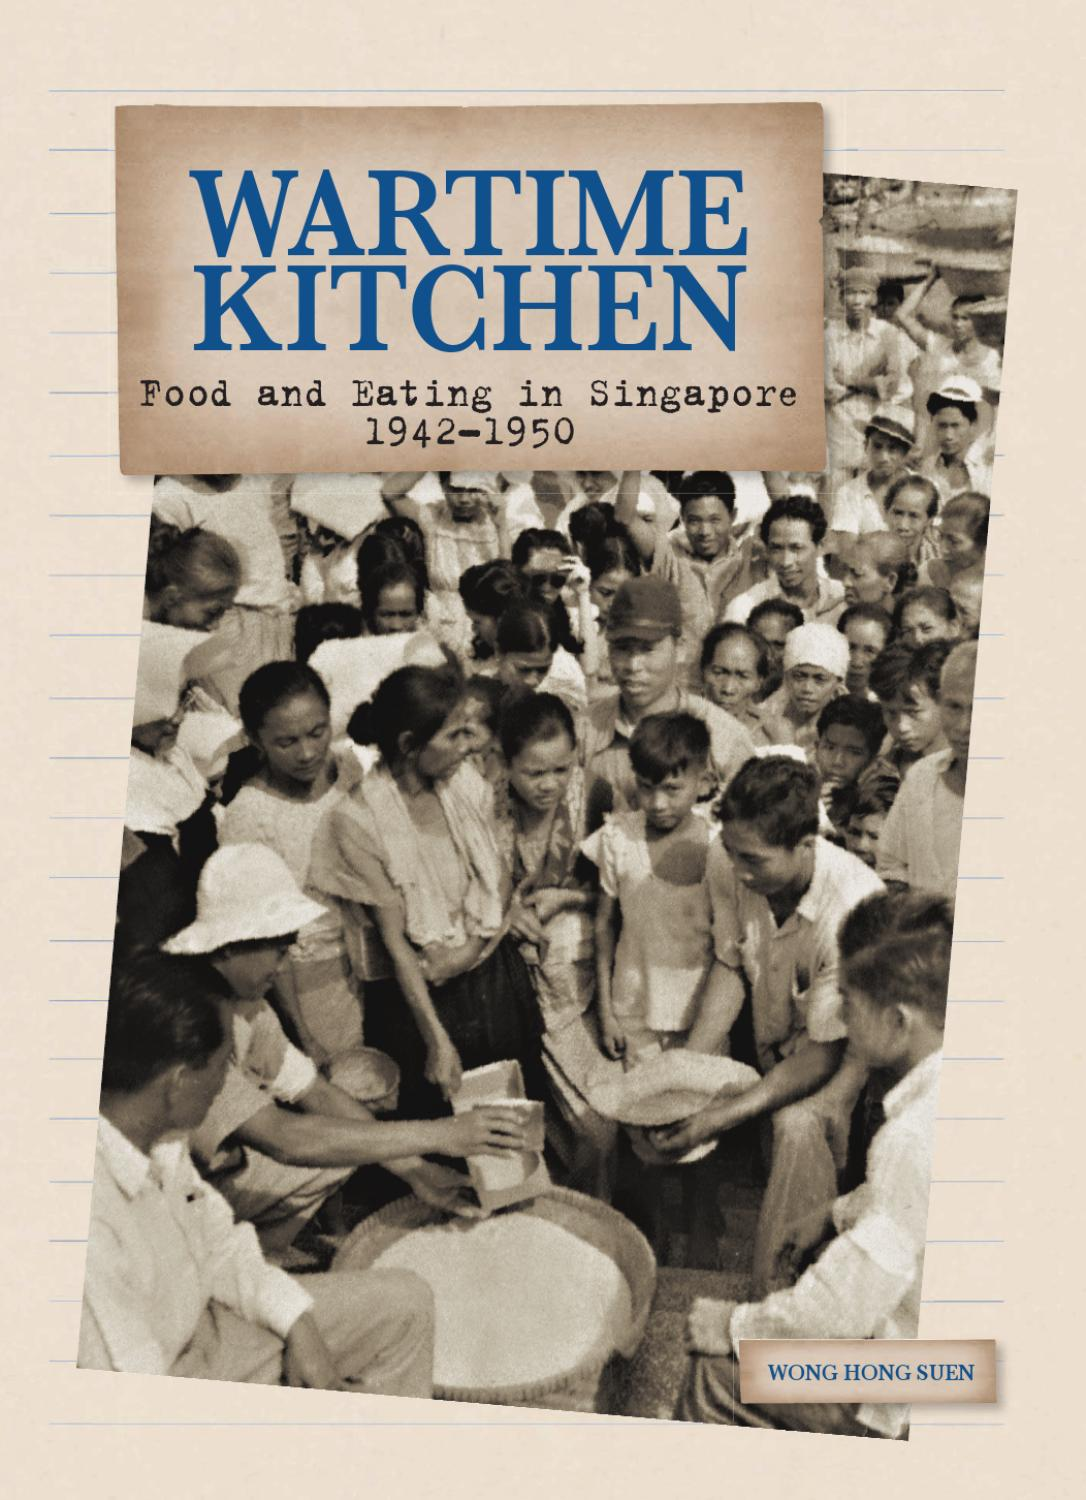 Wartime Kitchen And Garden Wartime Kitchen Food And Eating In Singapore 1942 1950 By